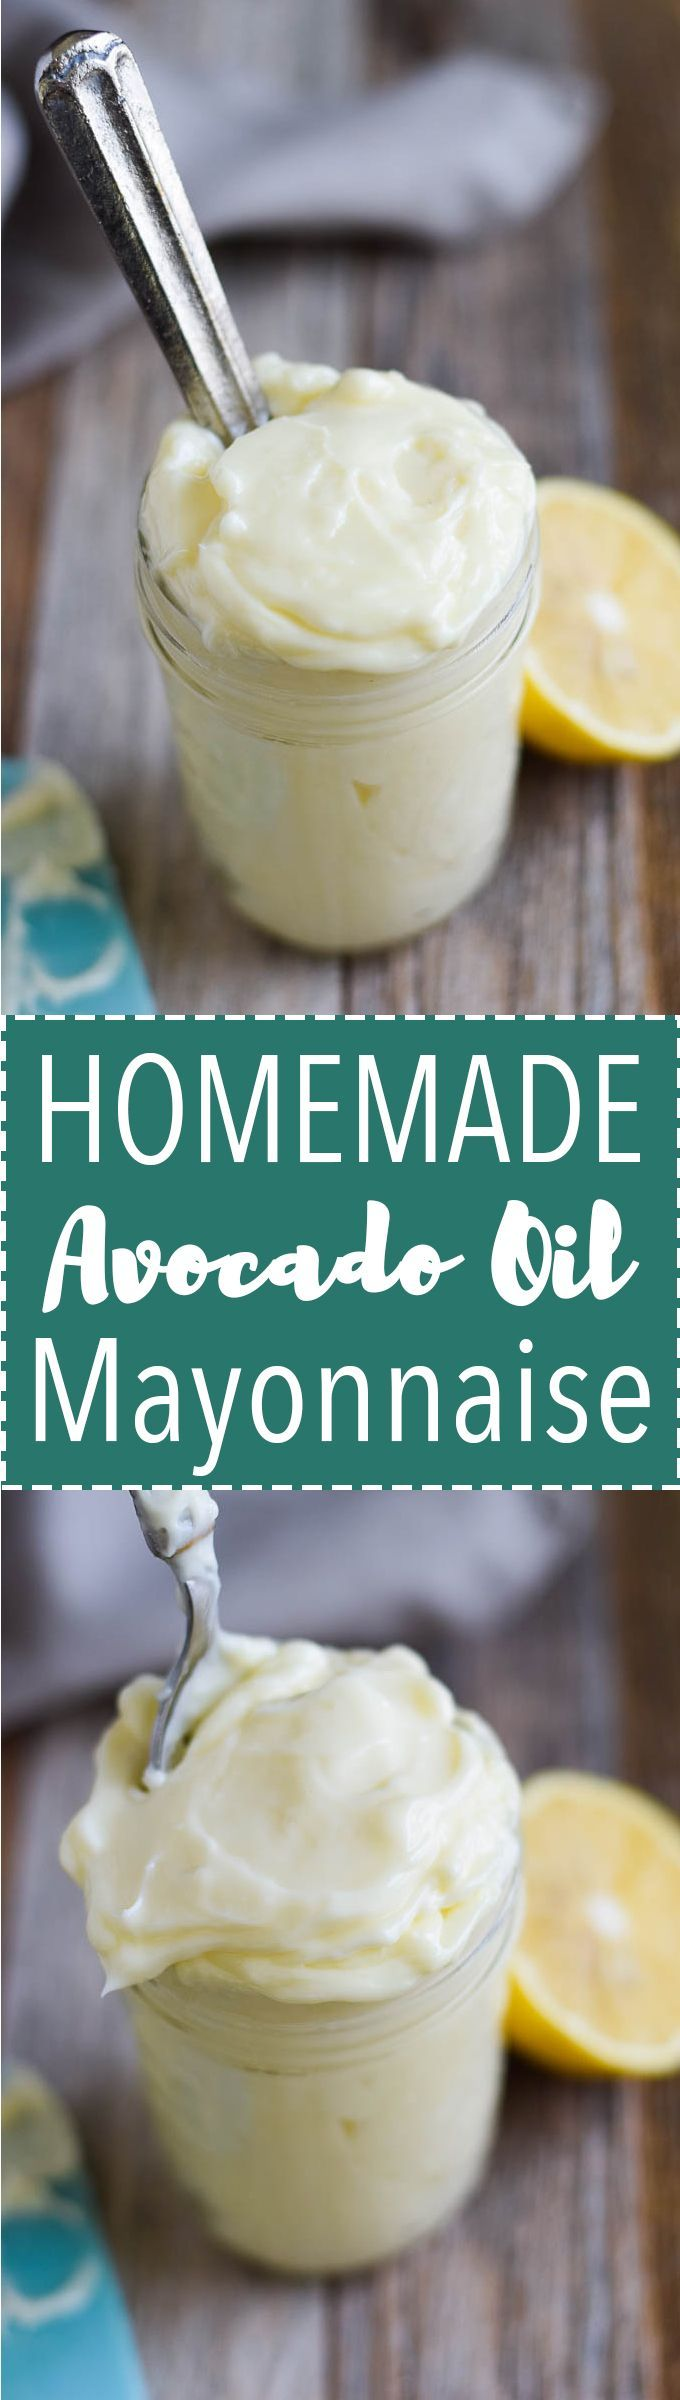 Easy homemade mayonnaise with avocado oil. Creamy, healthy mayo that is perfect for dressings, sauces and deviled eggs! (Real food paleo)